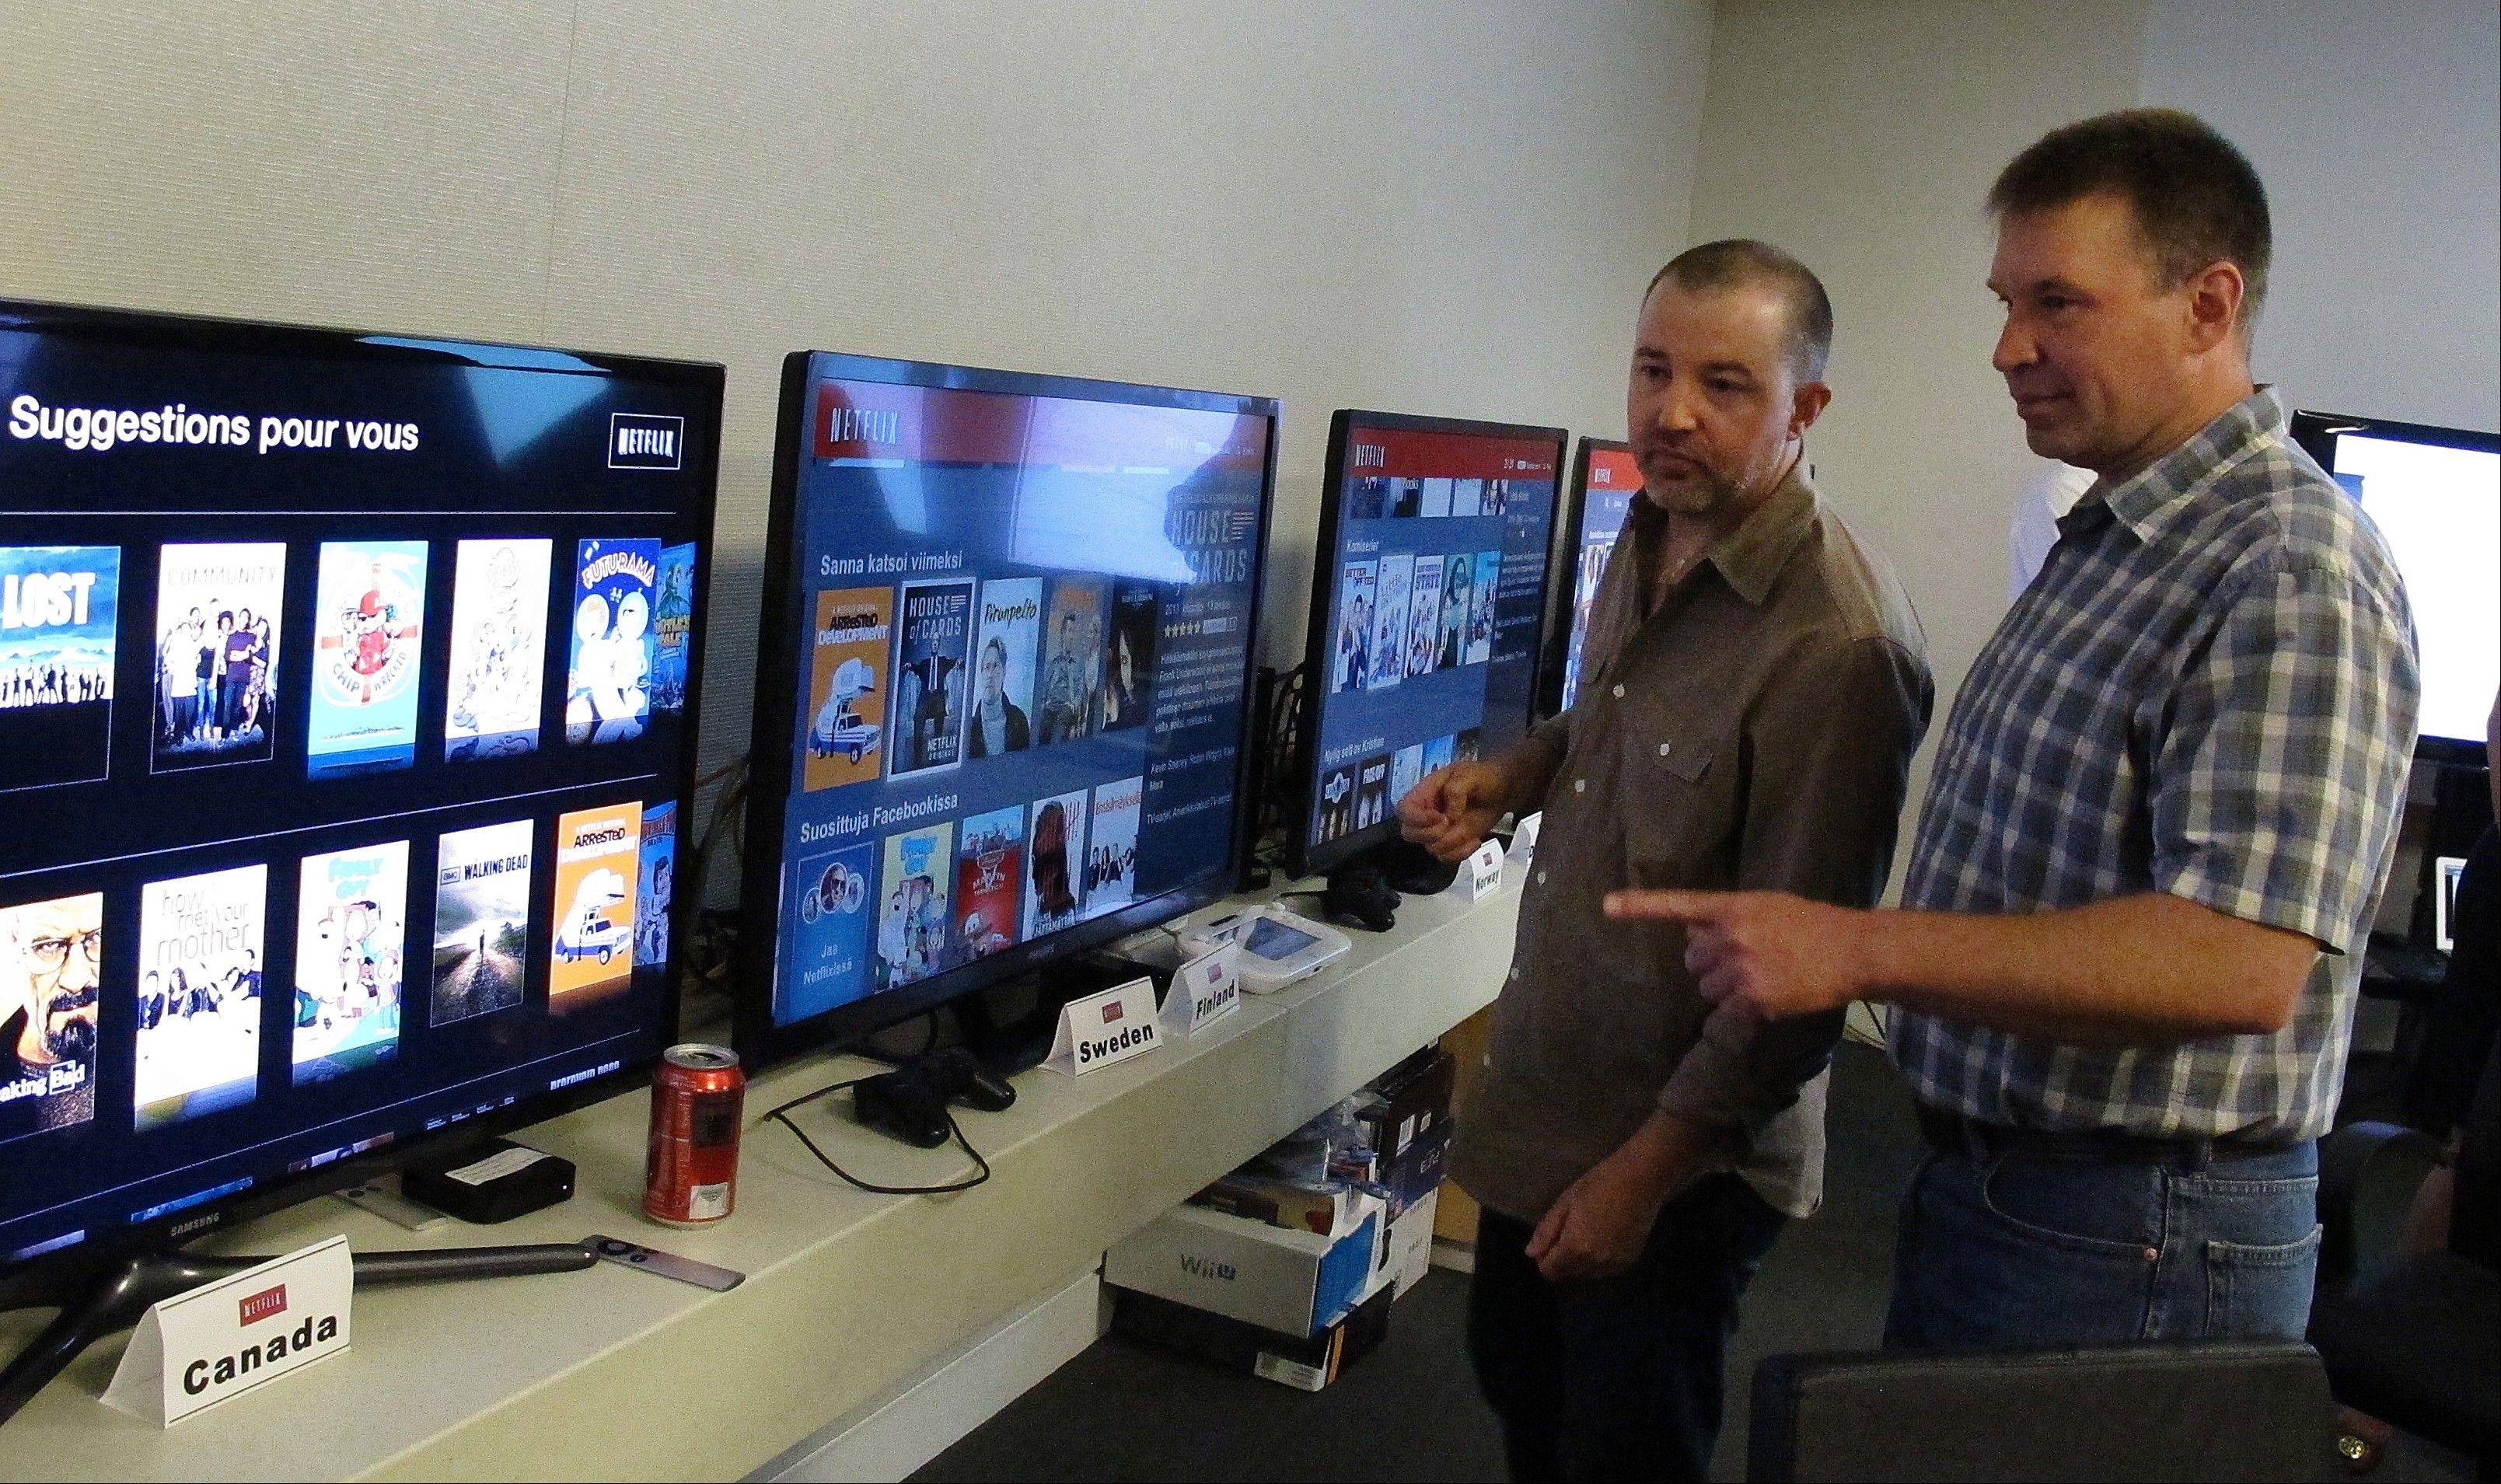 Chris Jaffe, Netflix VP of Product Innovation, left, and Bob Heldt, Director of Engineering, look over video displays as they await the debut of �Orange is the new black� in Los Gatos, Calif.